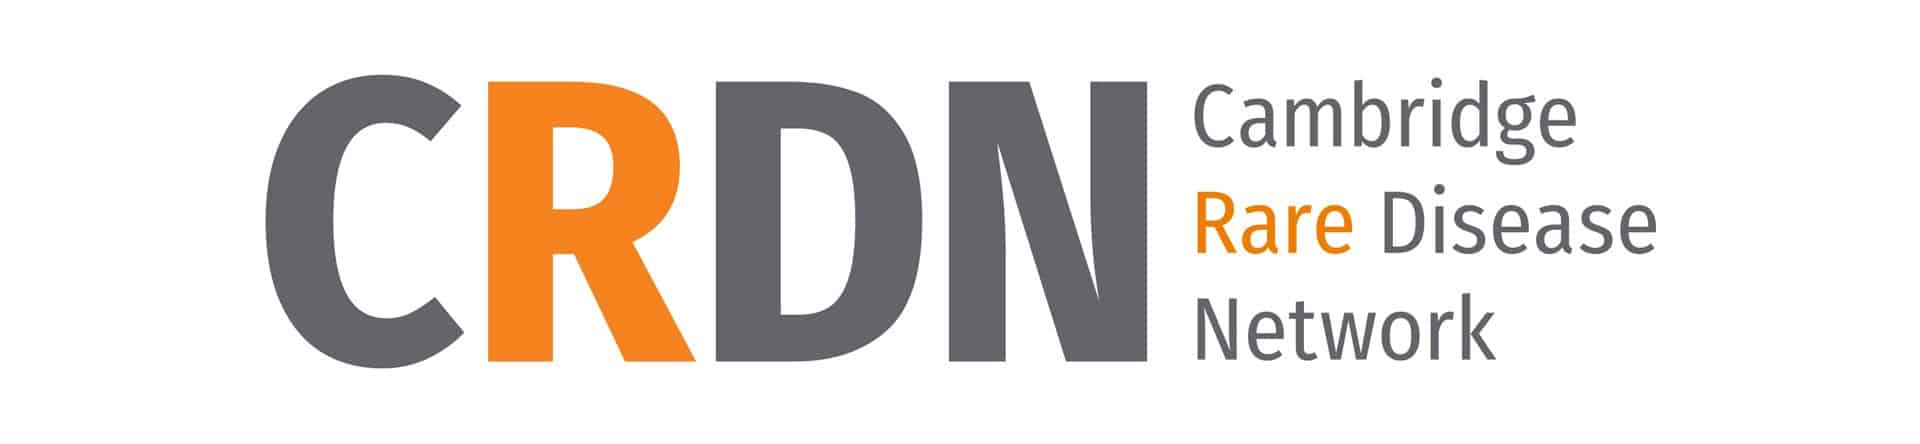 CRDN main website header logo